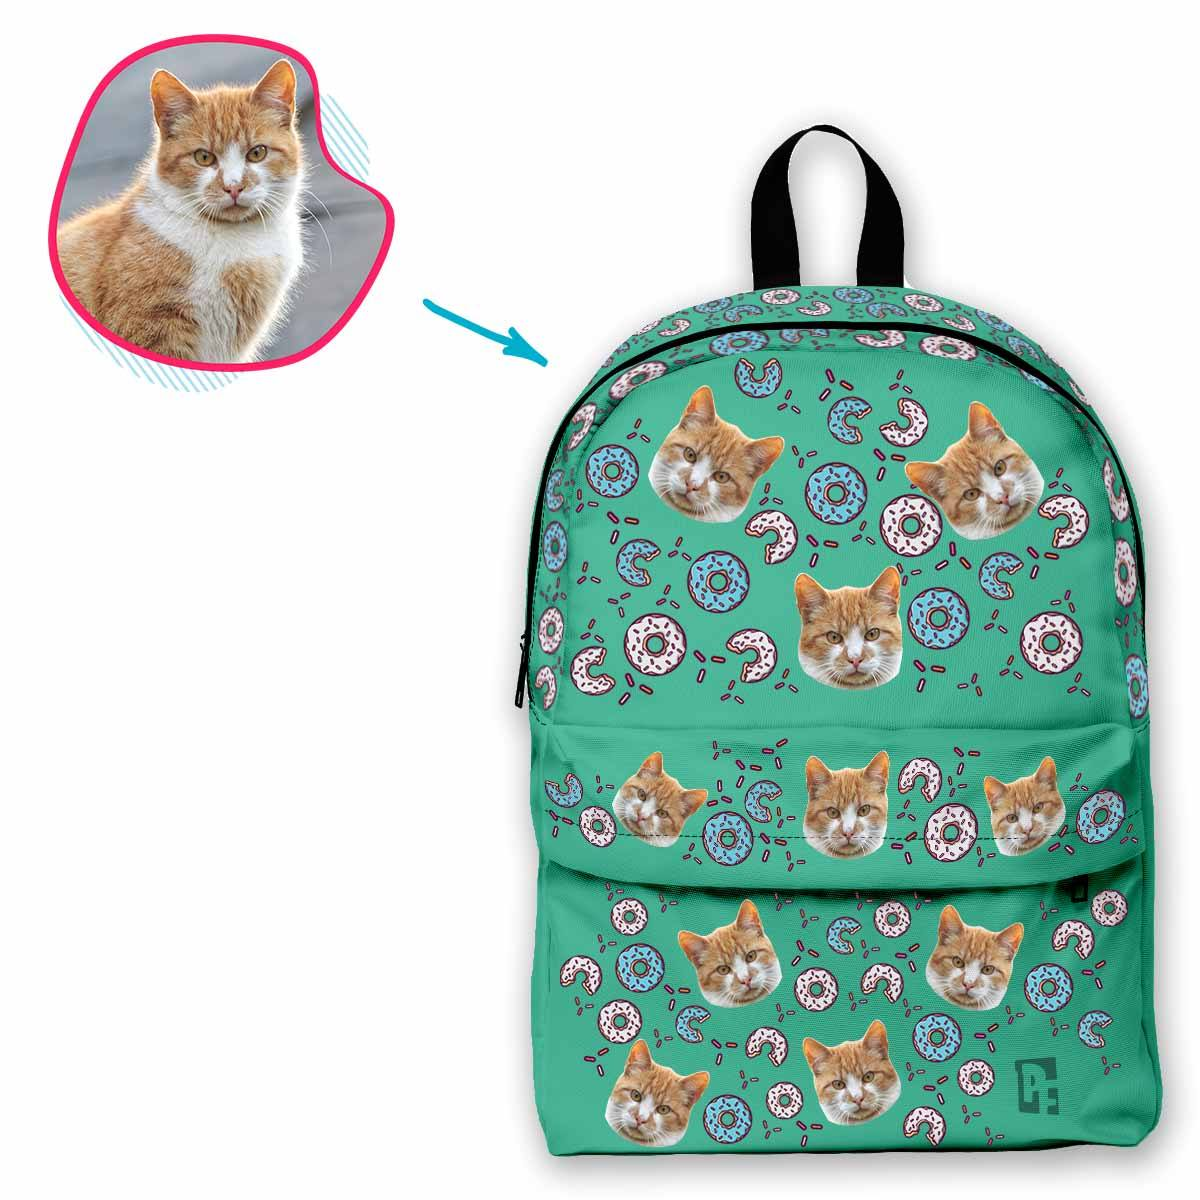 mint Donuts classic backpack personalized with photo of face printed on it